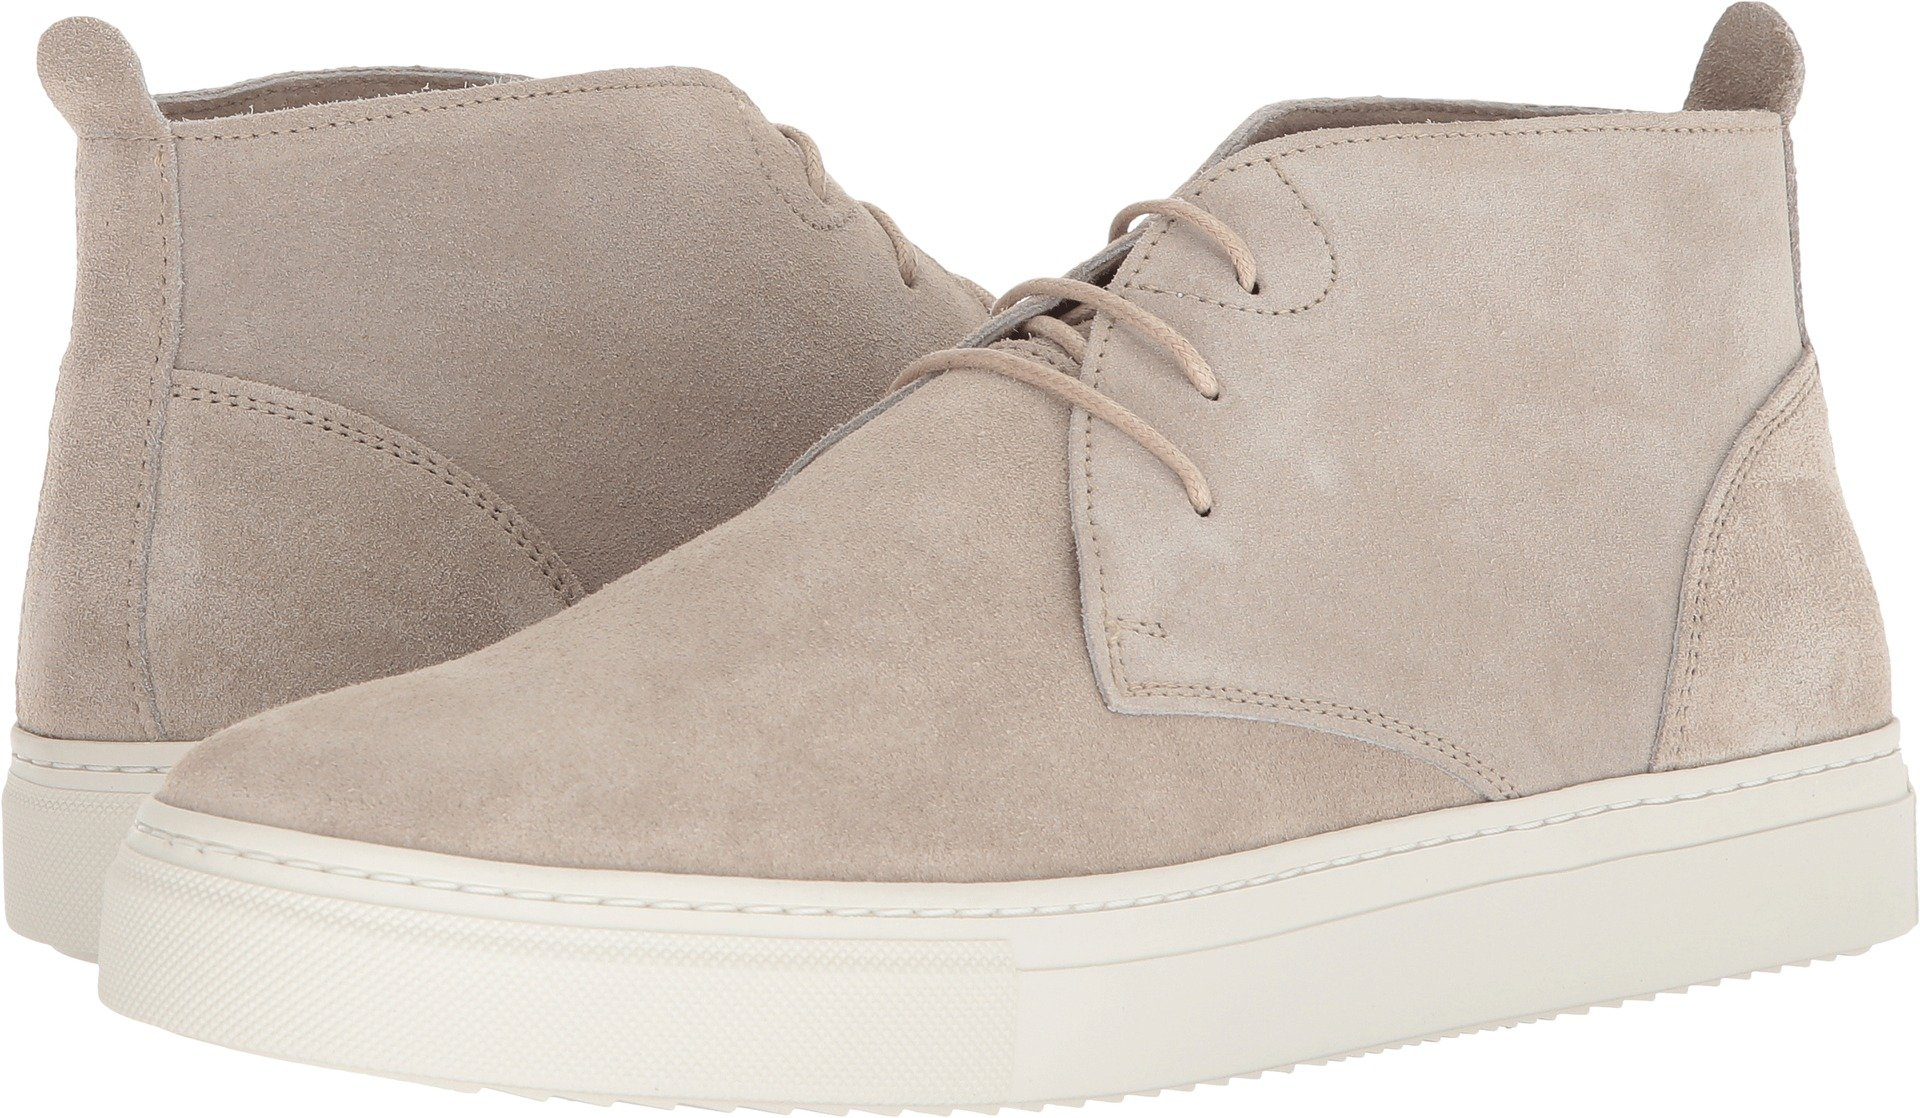 Supply Lab Men's Shep Sand Suede Lace up Casual Color Sand Suede Size 10.5